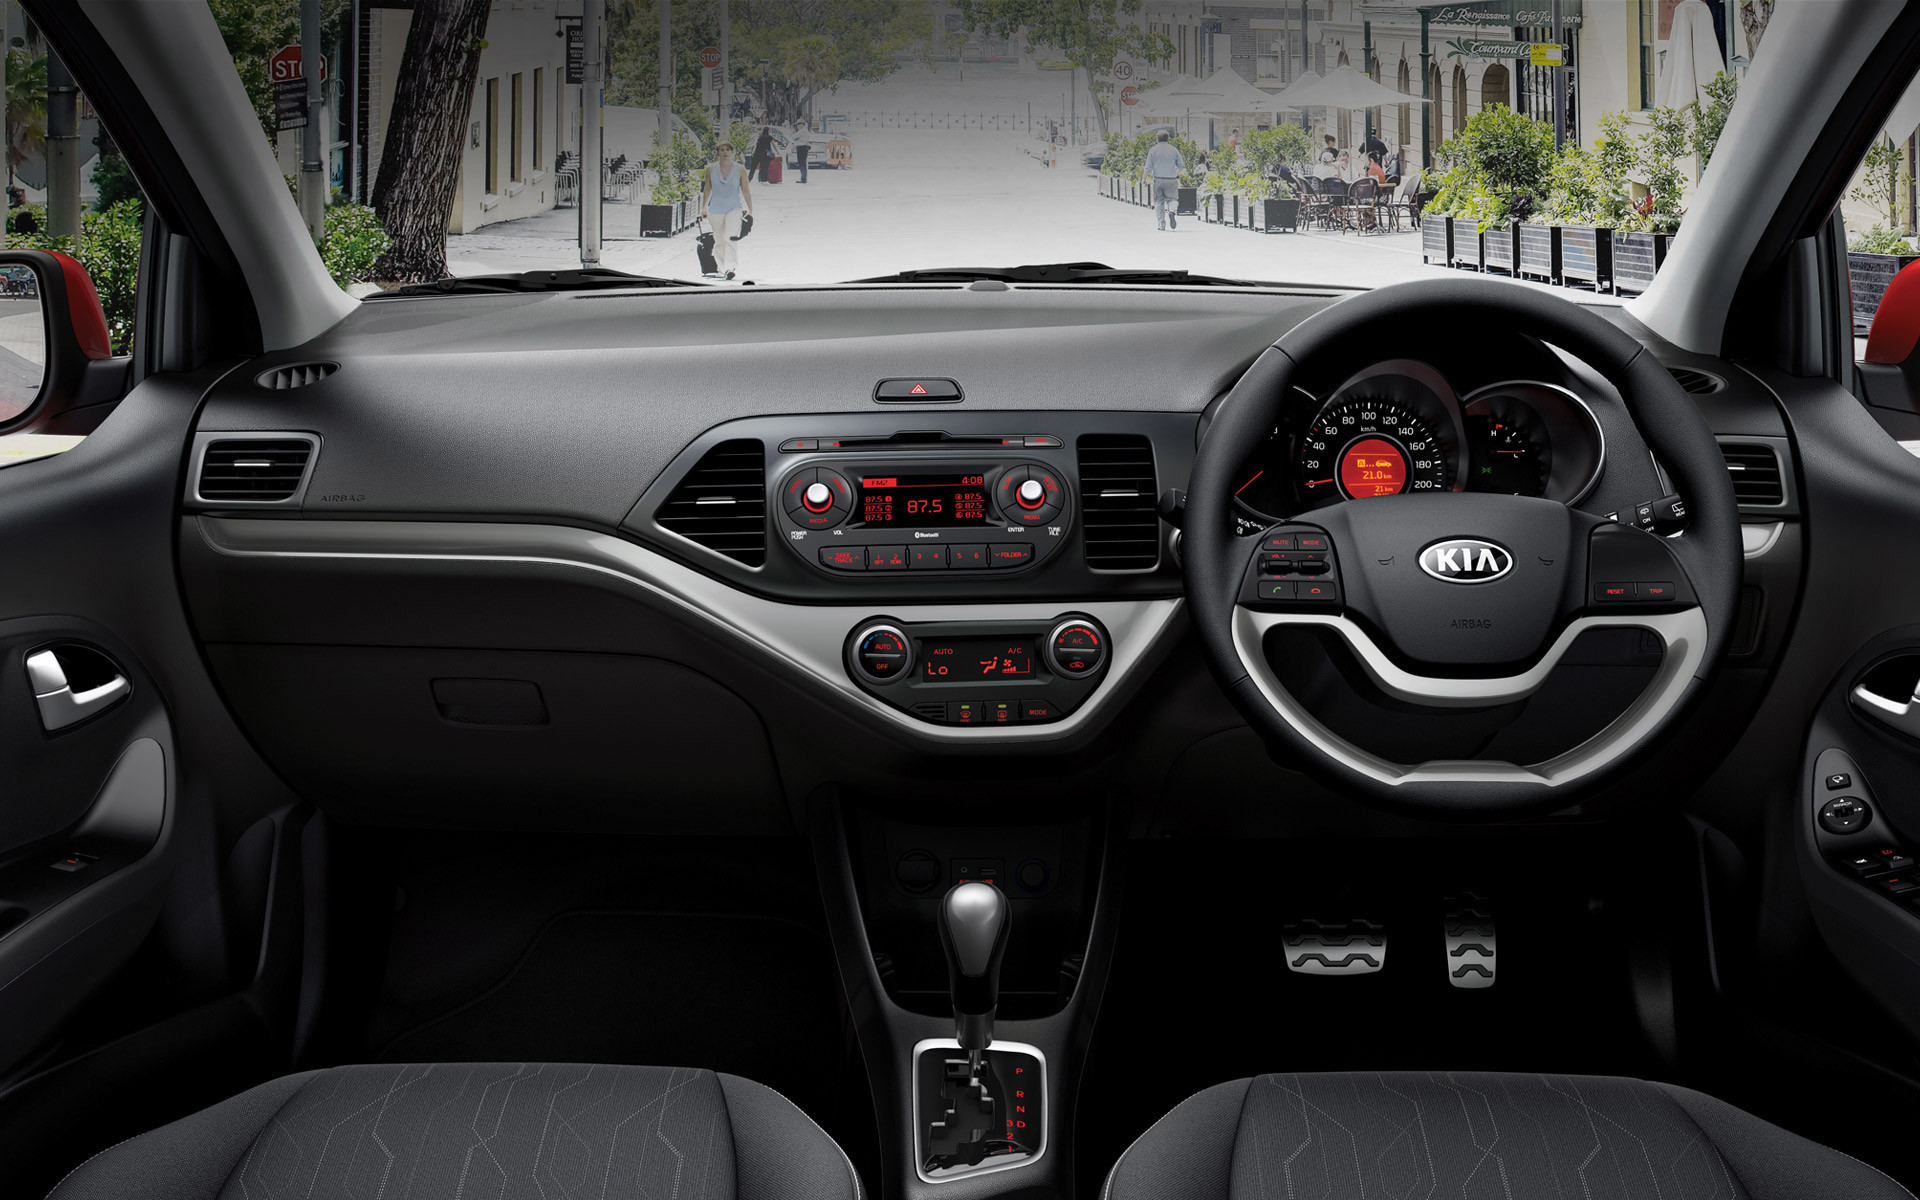 KIA Picanto in Pakistan: Details Available | CarSpiritPK